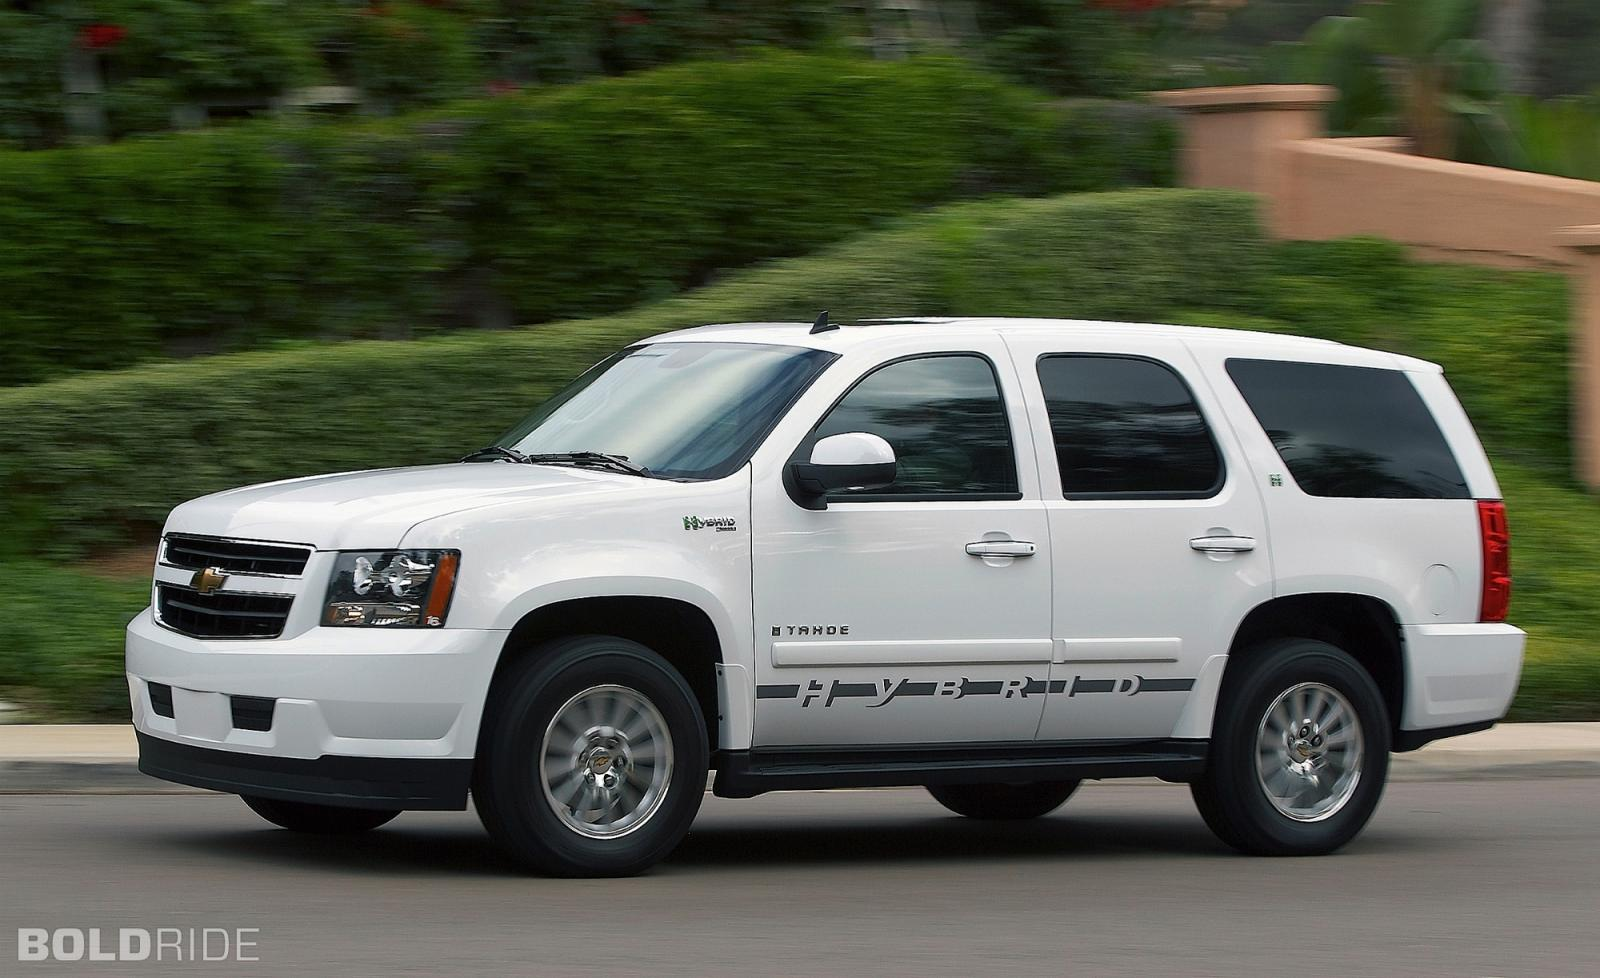 2011 chevrolet tahoe hybrid information and photos zombiedrive. Black Bedroom Furniture Sets. Home Design Ideas